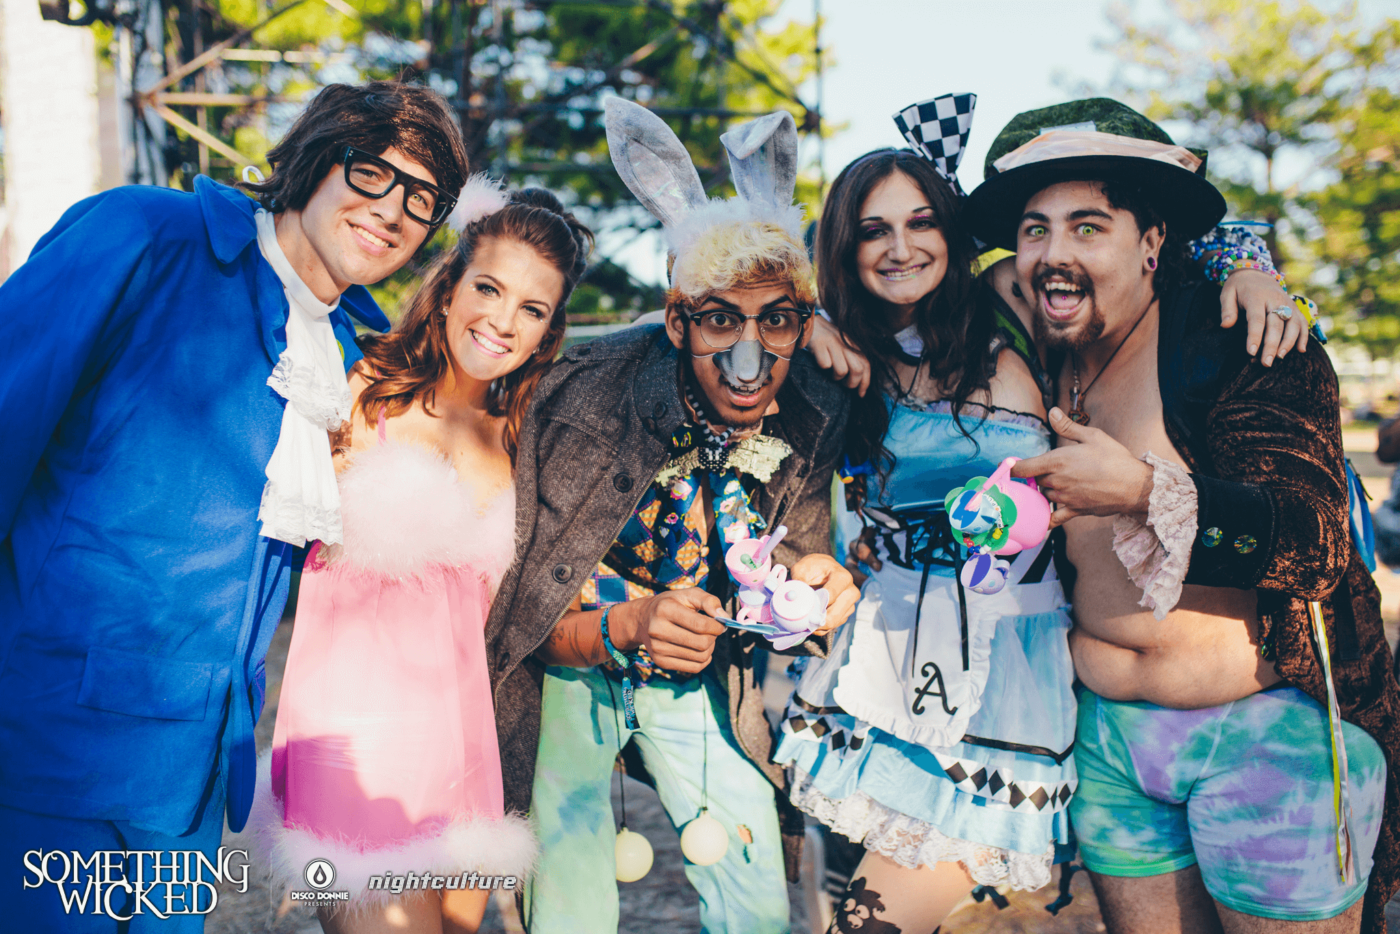 costumed group of fans at something wicked